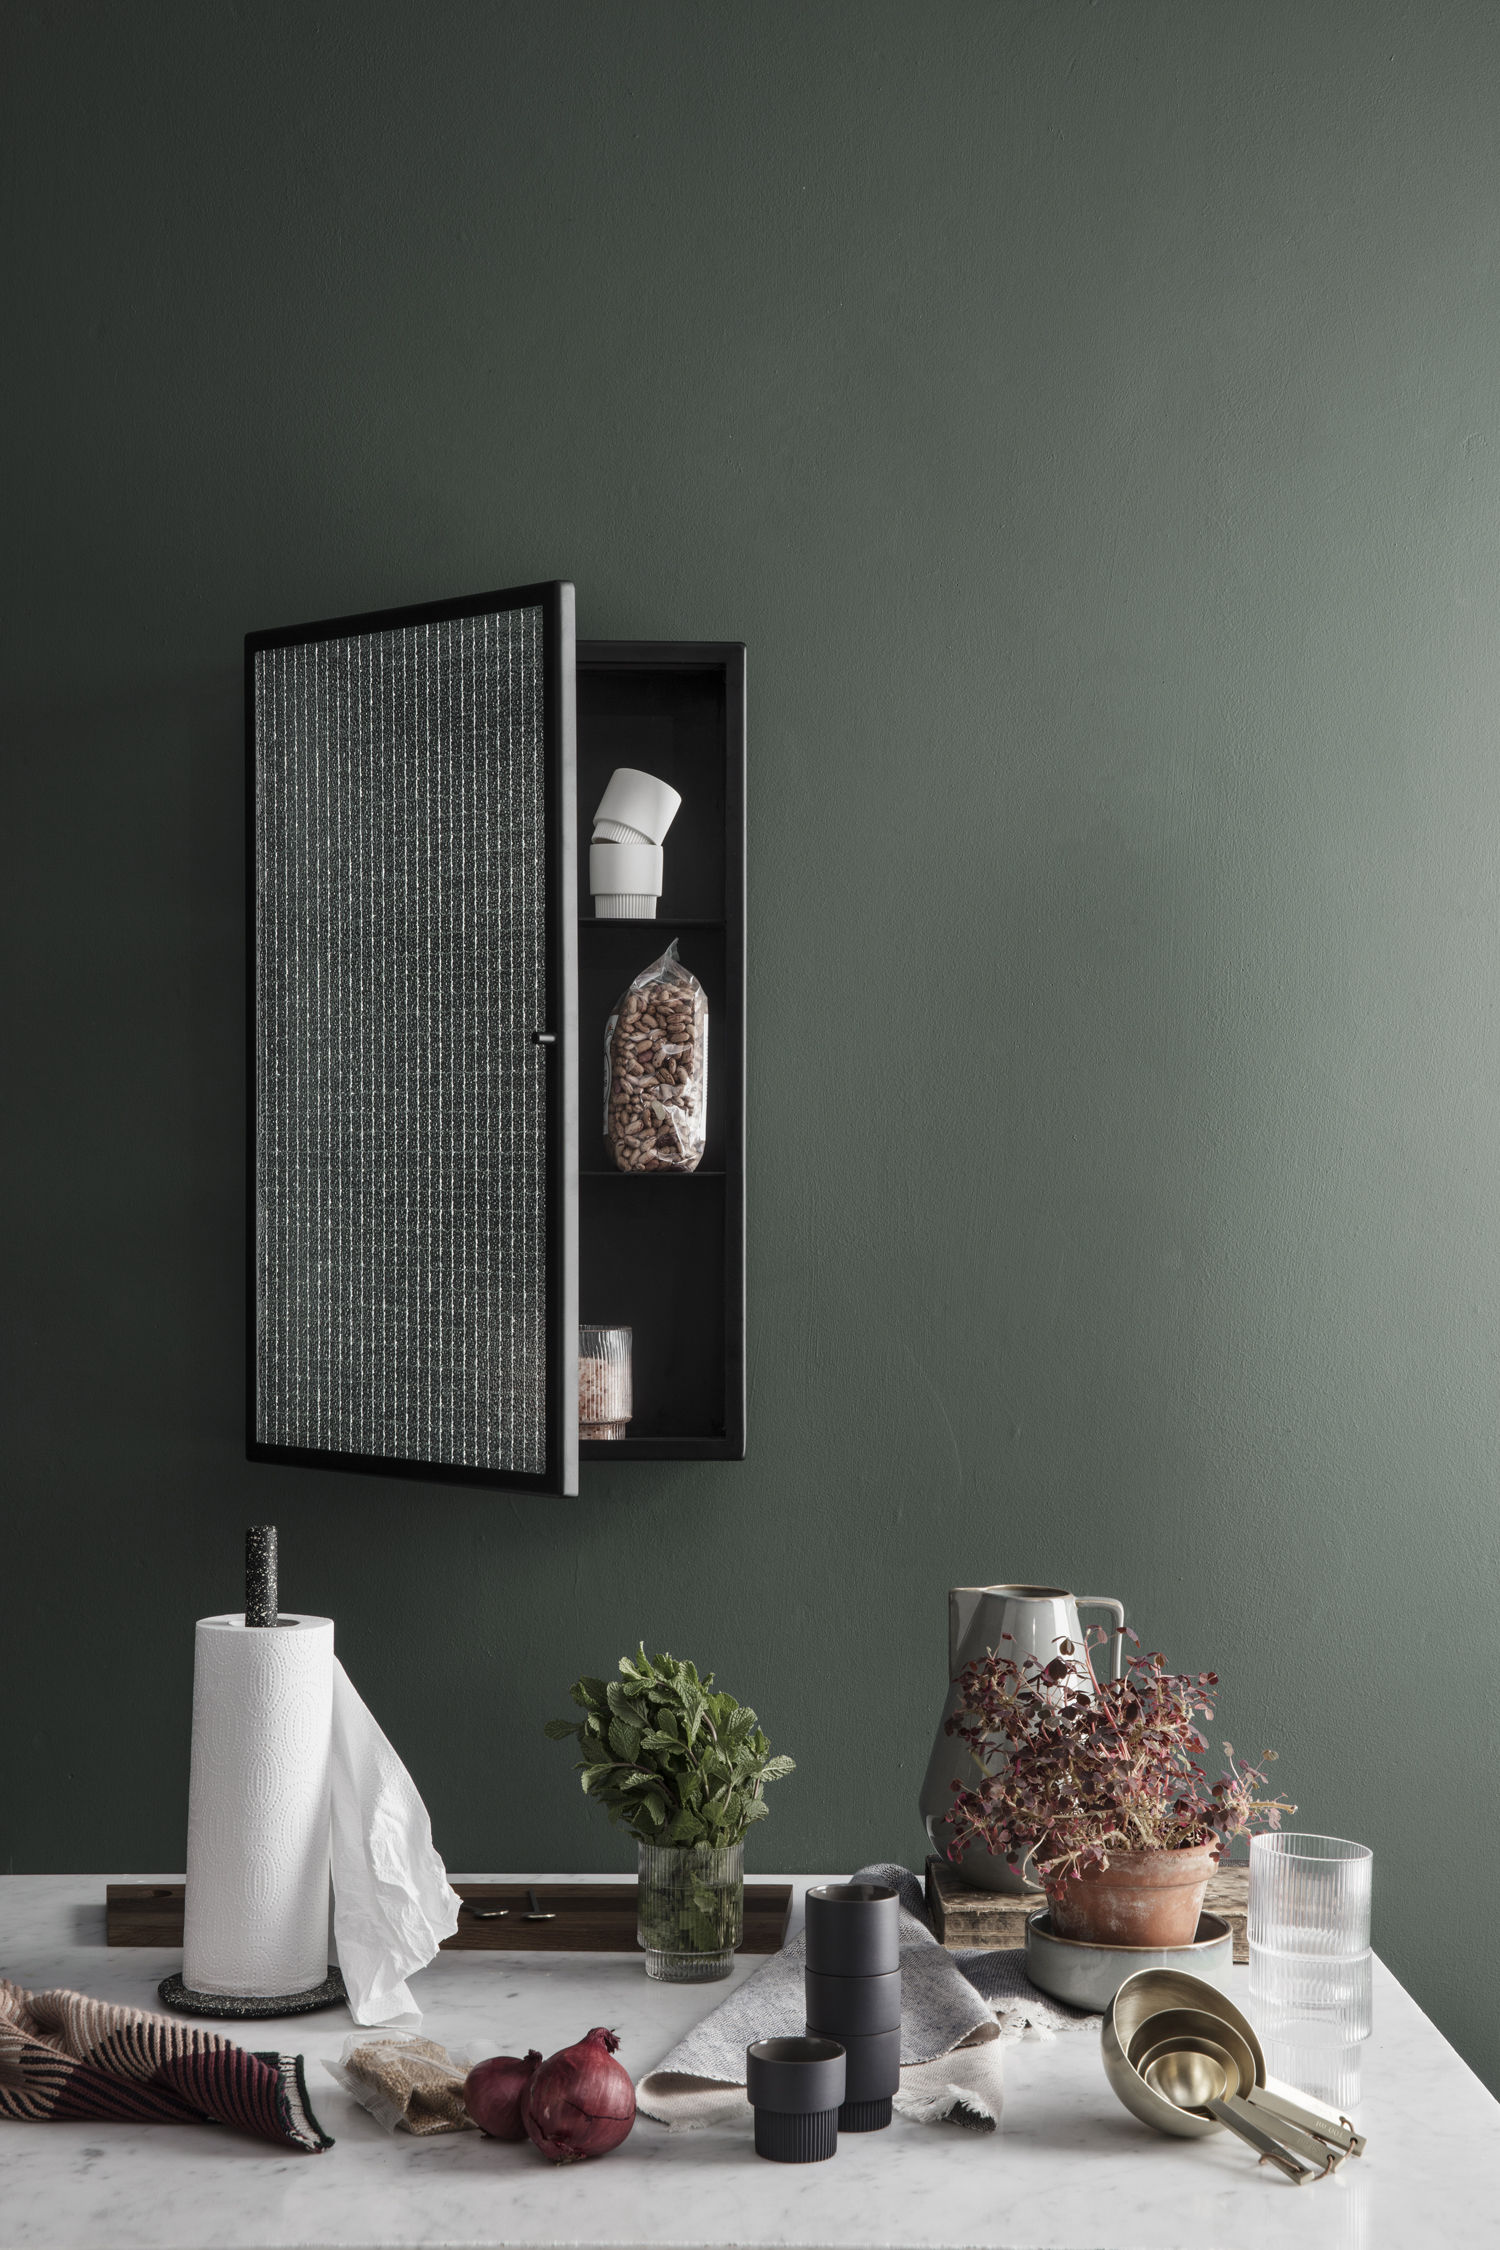 Haze Wall storage - L 35 x H 60 cm / Glass & metal Translucent glass ...